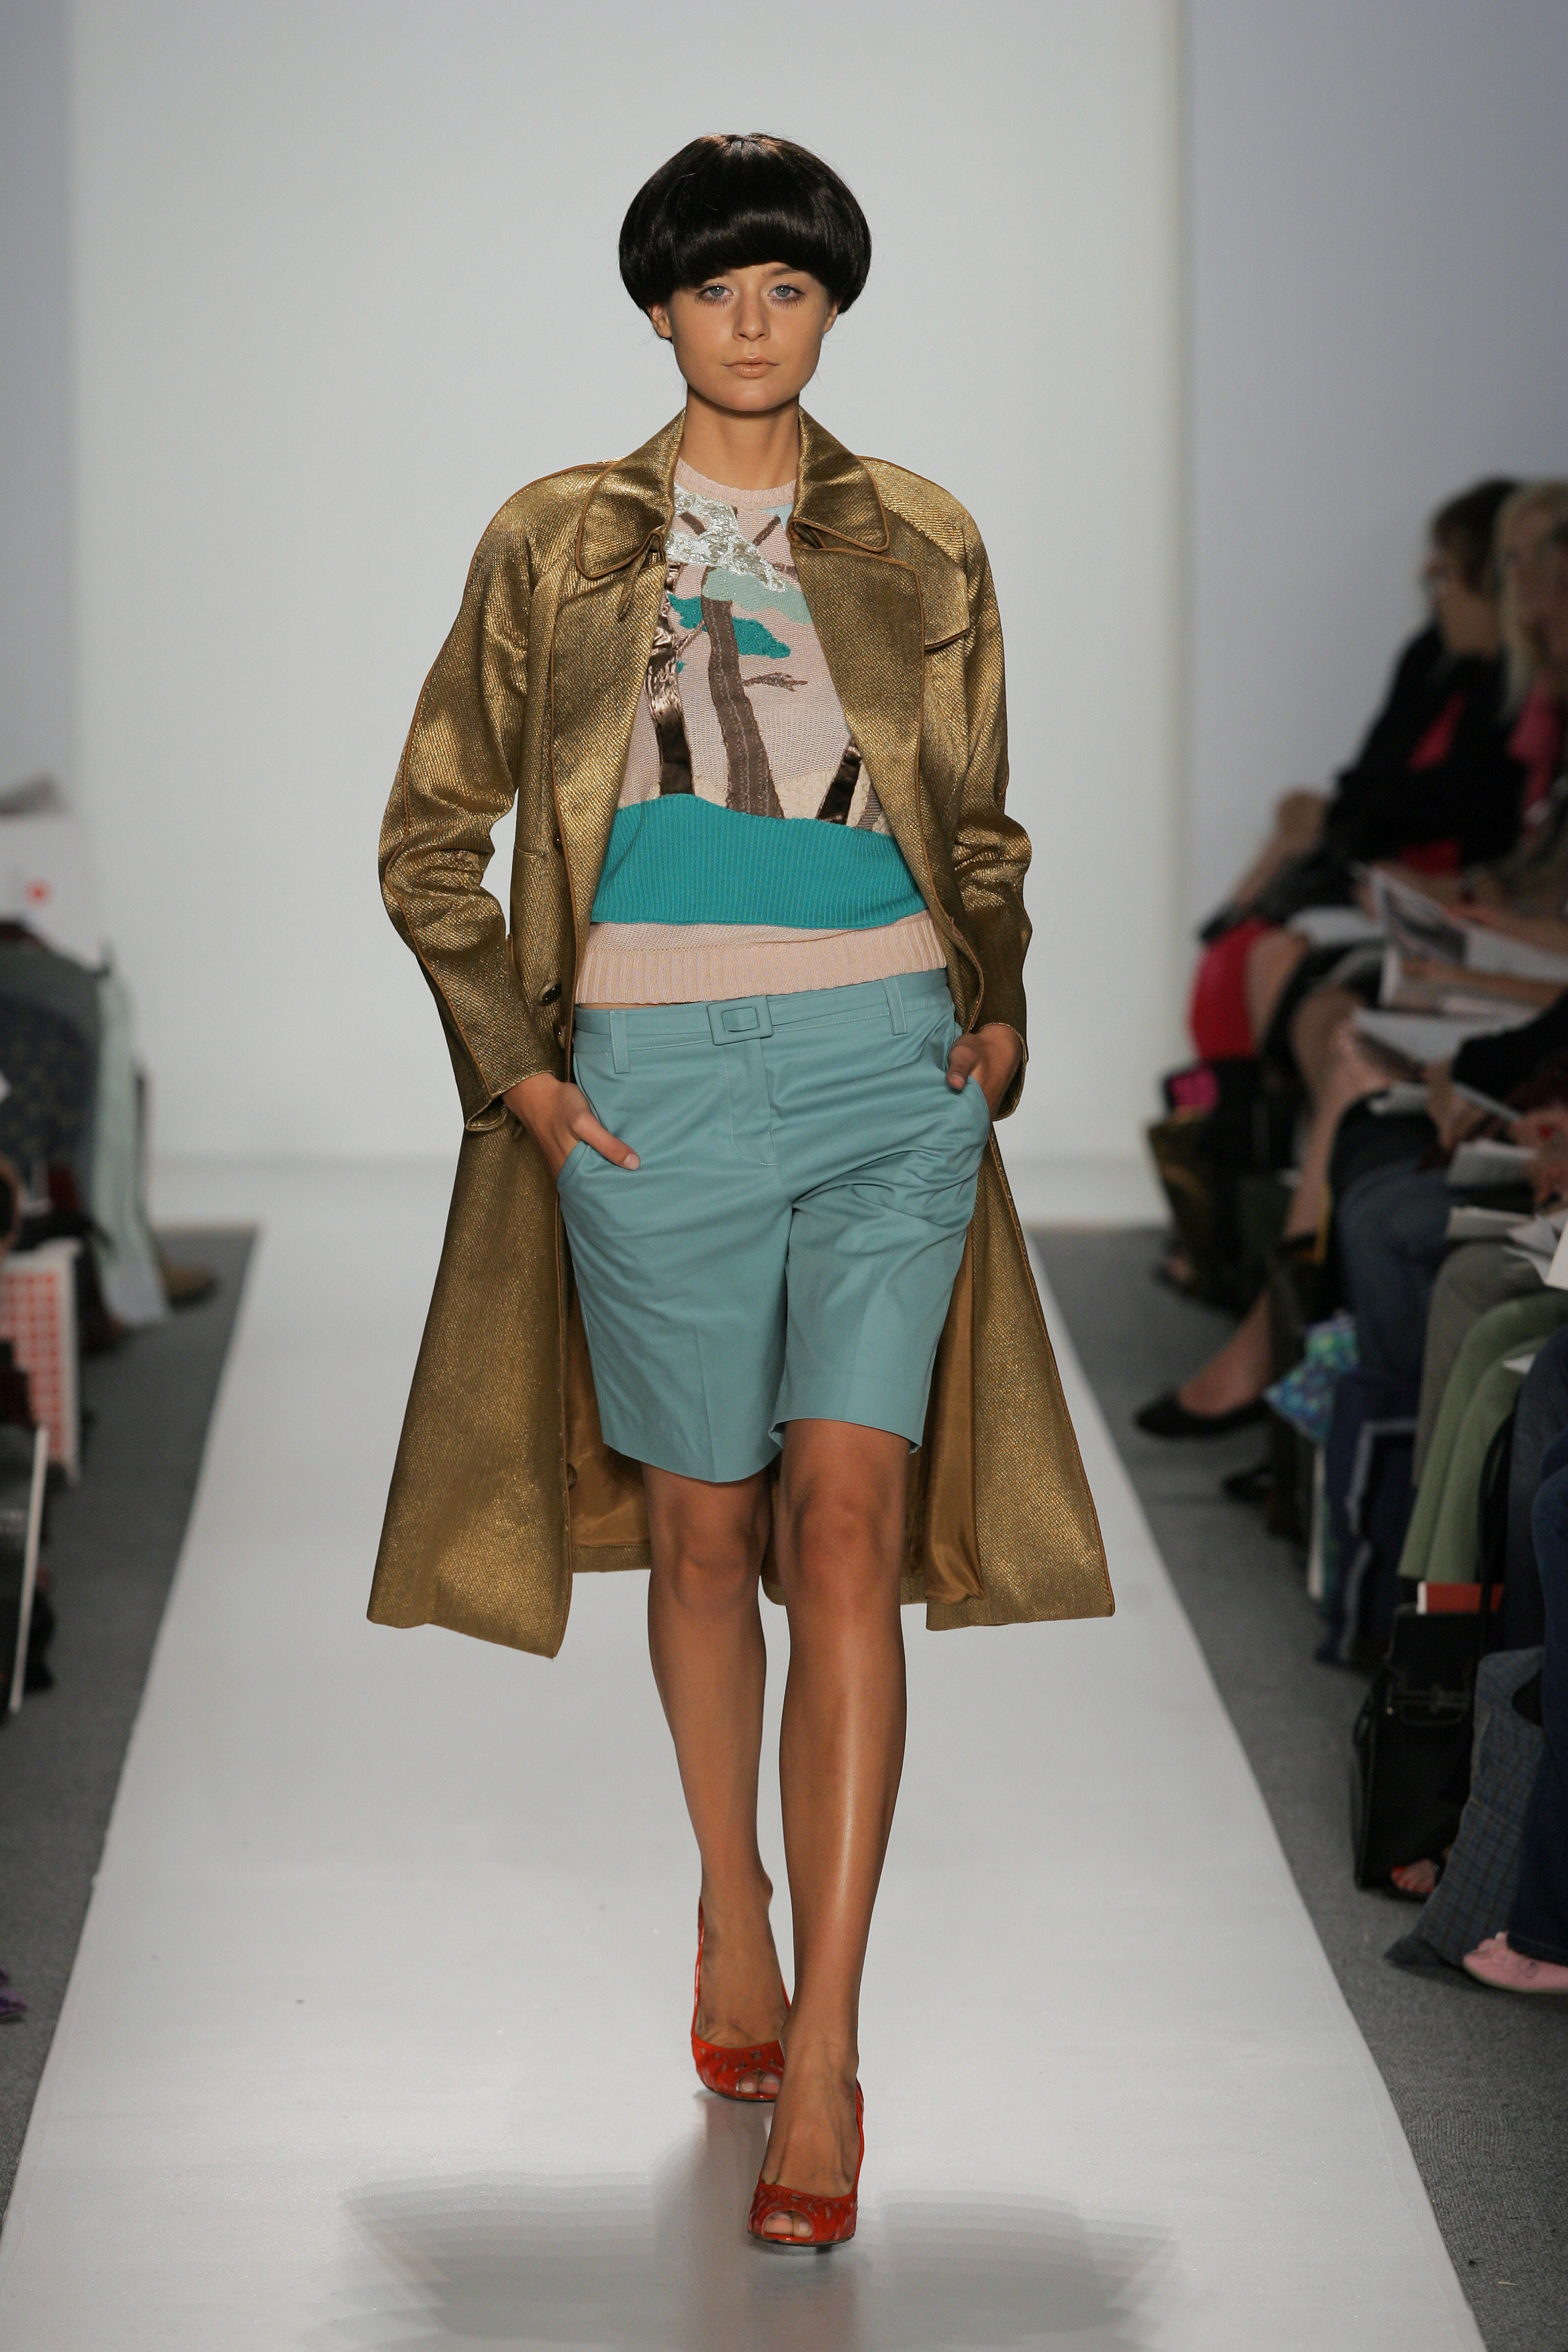 A look from alumni Jamie Mihlrad and Kia Faulkenberry Lewis' collaborative collection at the School of Fashion's first NYFW show in September 2005. Photo by Getty Photos